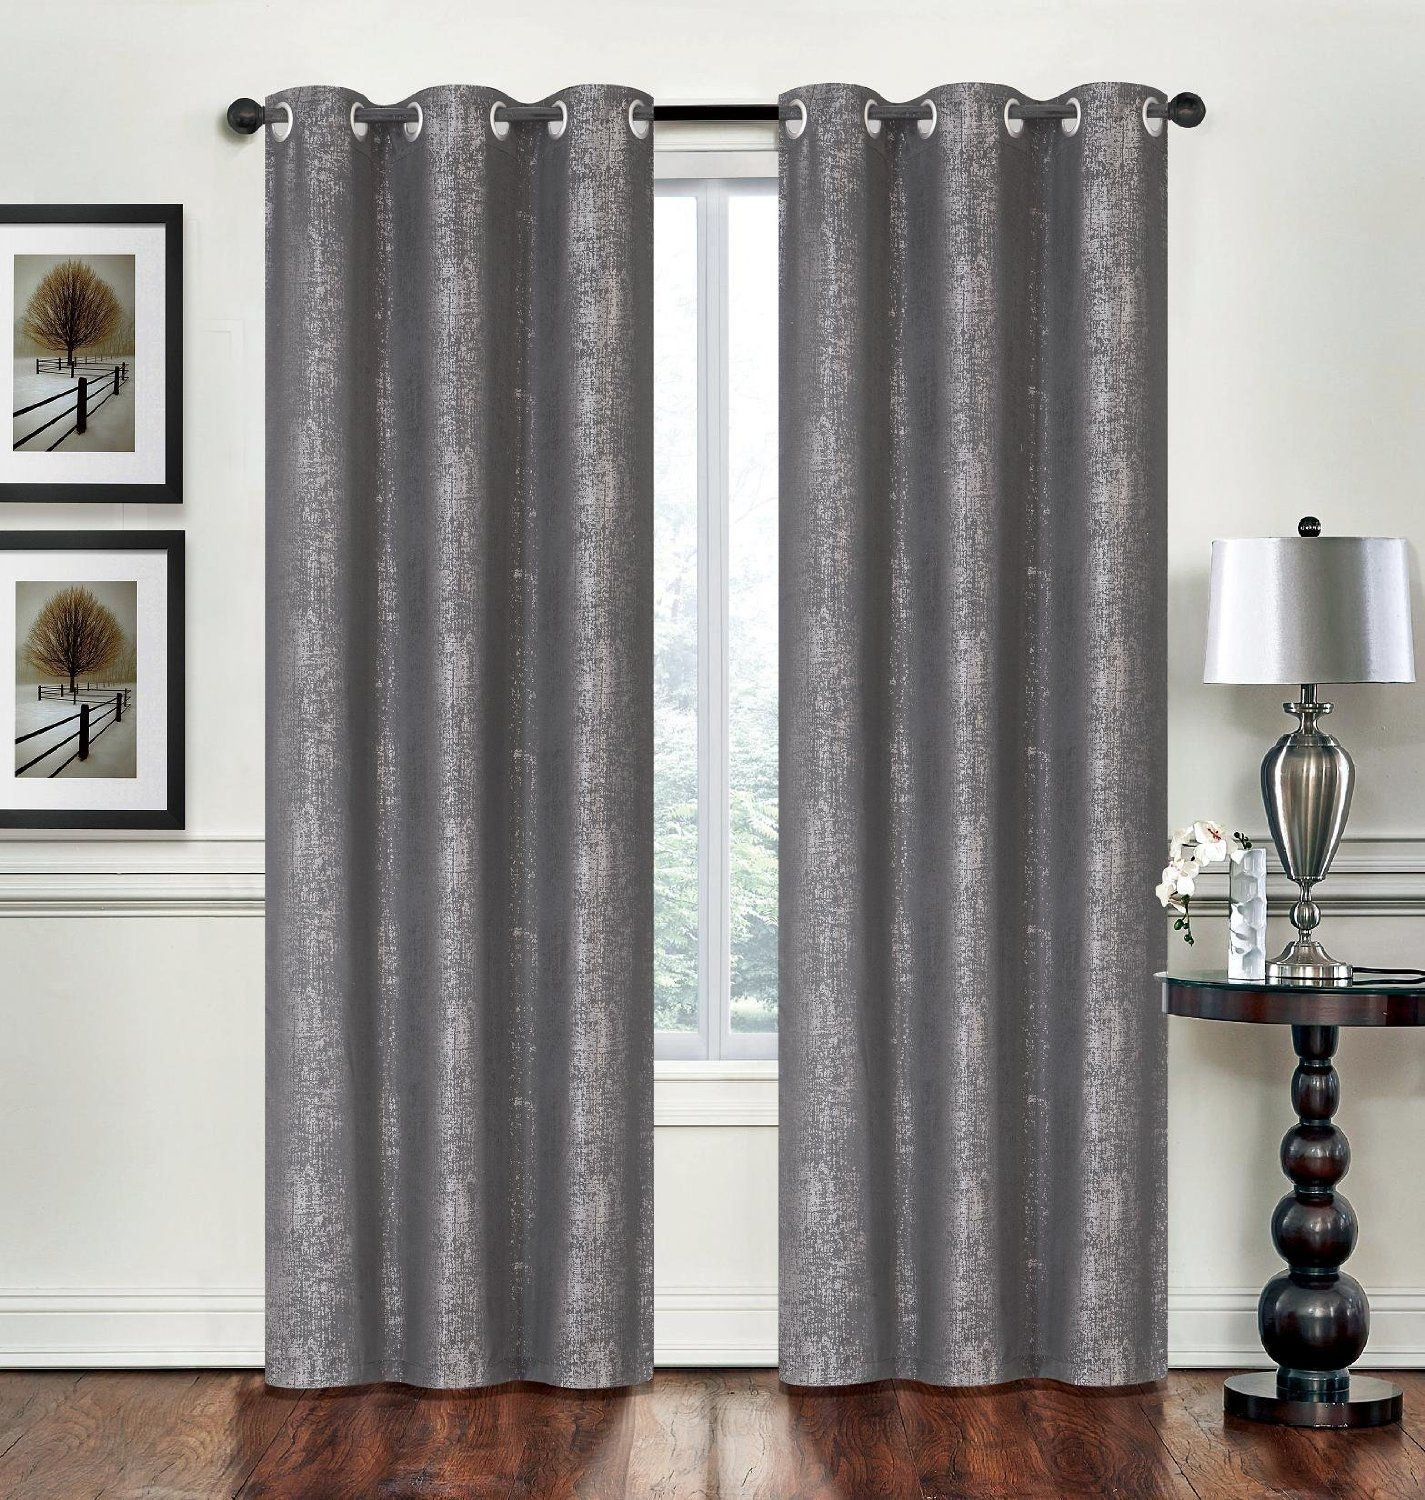 Amazon com clever home city modern metallic 95 inch curtains drapery panels window treatments with silver grommets kitchen dining